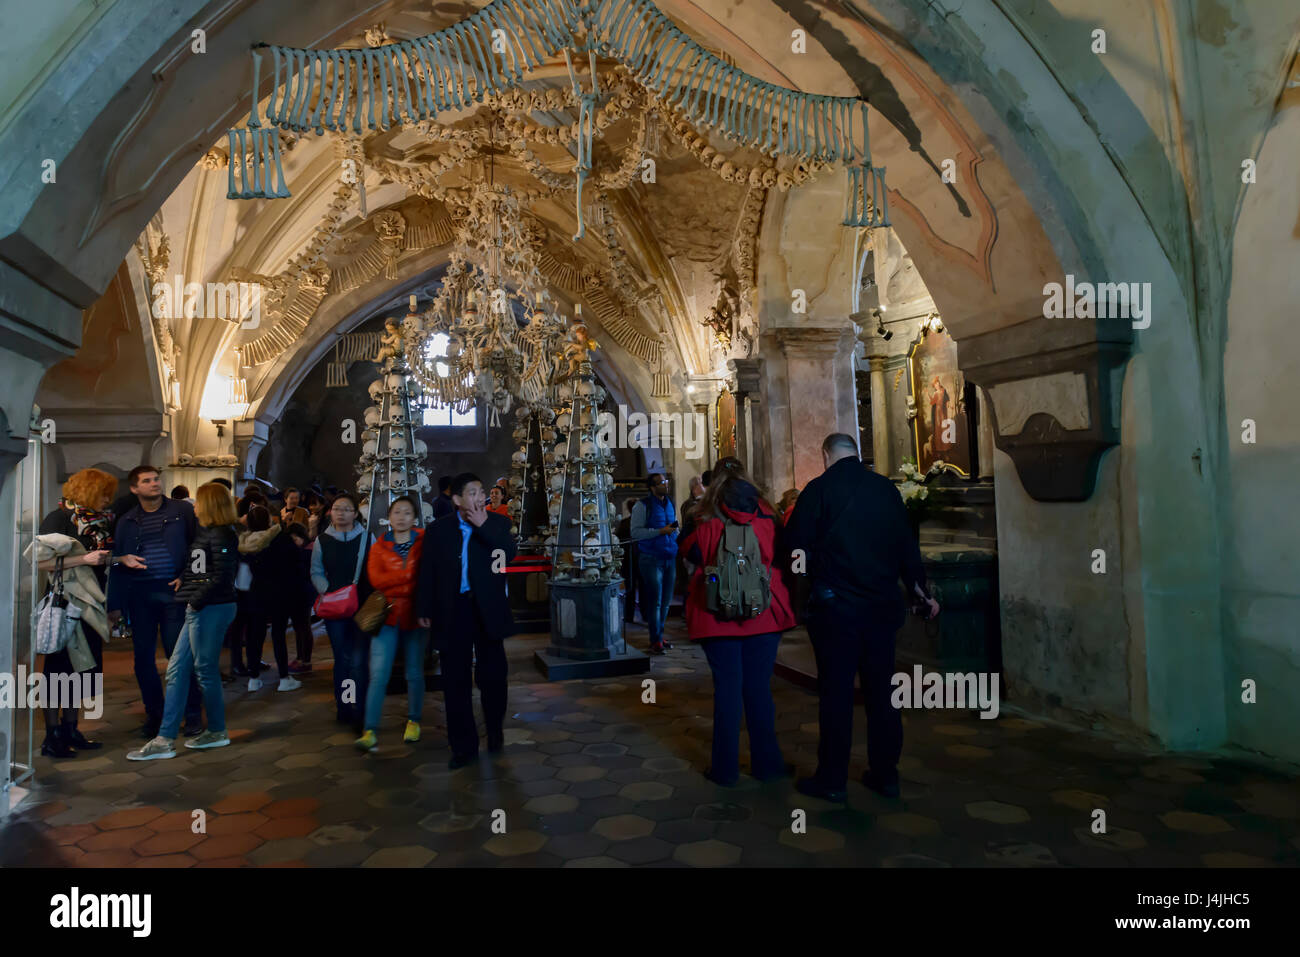 Decorations of human bones in the Sedlec ossuary in Kutna Hora. Czech Republic - Stock Image